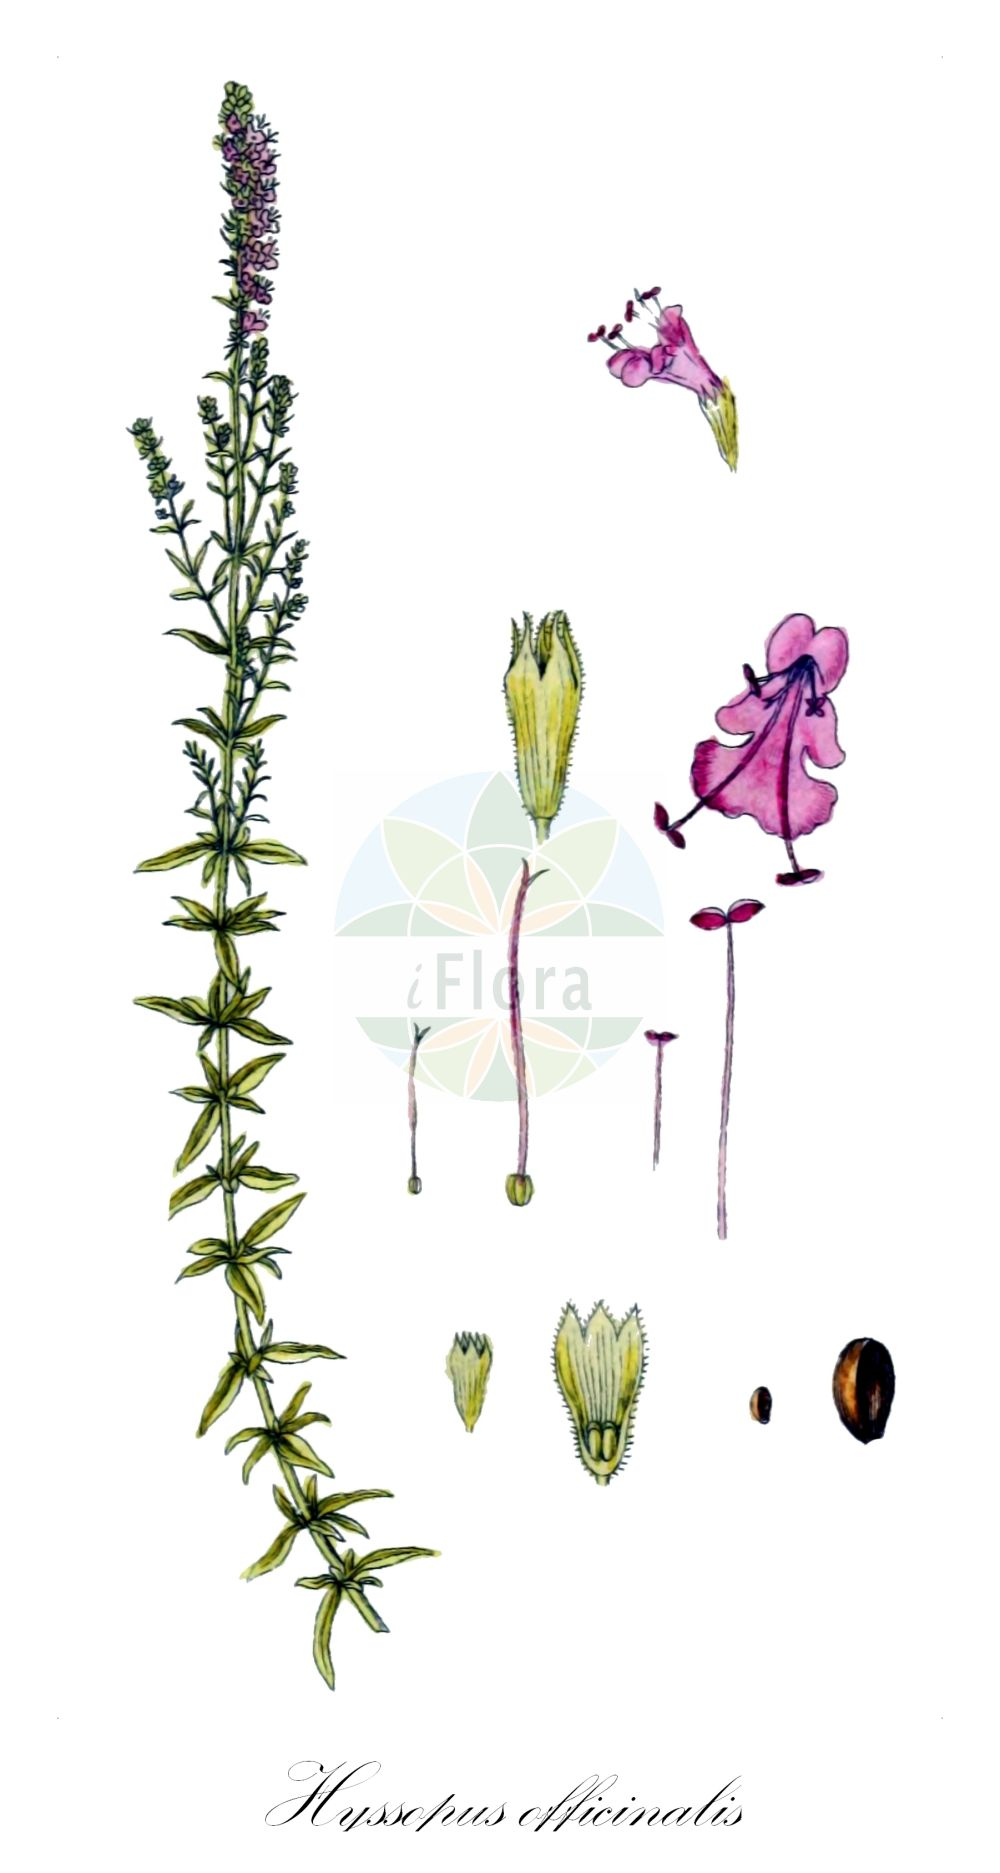 Historische Abbildung von Hyssopus officinalis (Echter Ysop - Hyssop). Das Bild zeigt Blatt, Bluete, Frucht und Same. ---- Historical Drawing of Hyssopus officinalis (Echter Ysop - Hyssop).The image is showing leaf, flower, fruit and seed.(Hyssopus officinalis,Echter Ysop,Hyssop,Thymus hyssopus,Gewoehnlicher Ysop,Hyssopus,Ysop,Hyssop,Lamiaceae,Lippenbluetengewaechse;Lippenbluetler,Nettle family,Blatt,Bluete,Frucht,Same,leaf,flower,fruit,seed,Sturm (1796f))